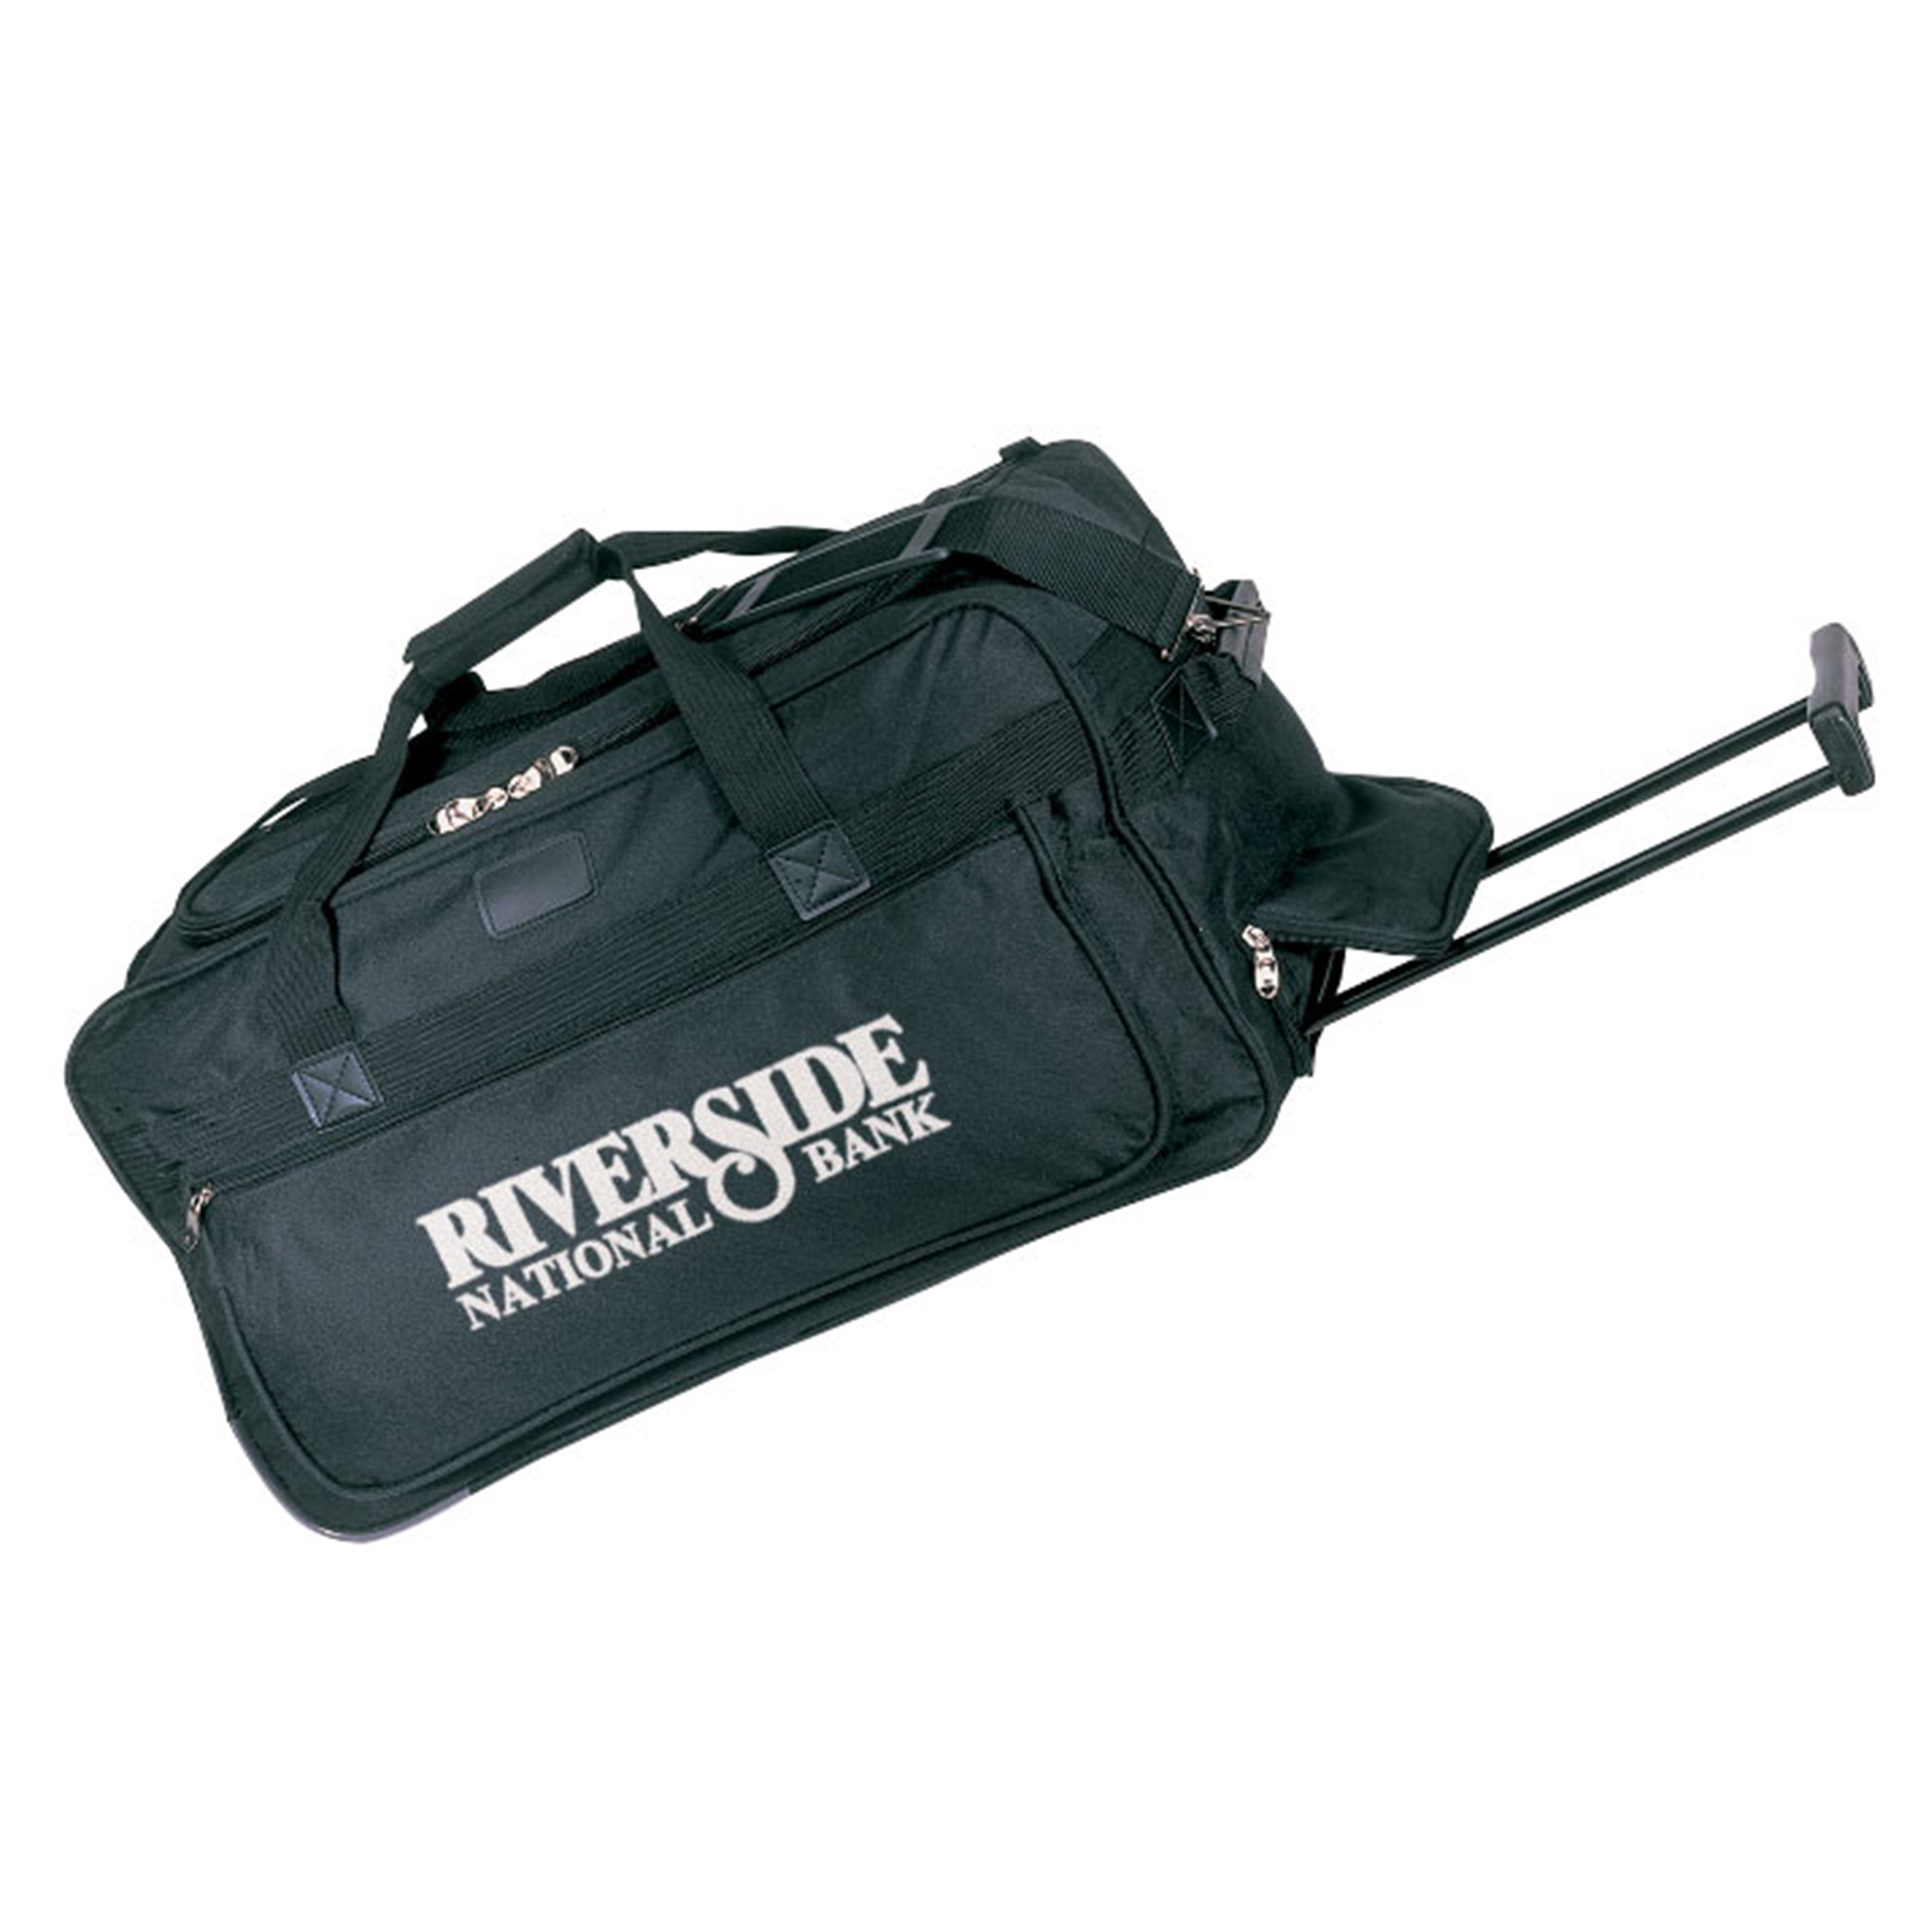 ROLLING DUFFLE BAG - 1 Colour Print